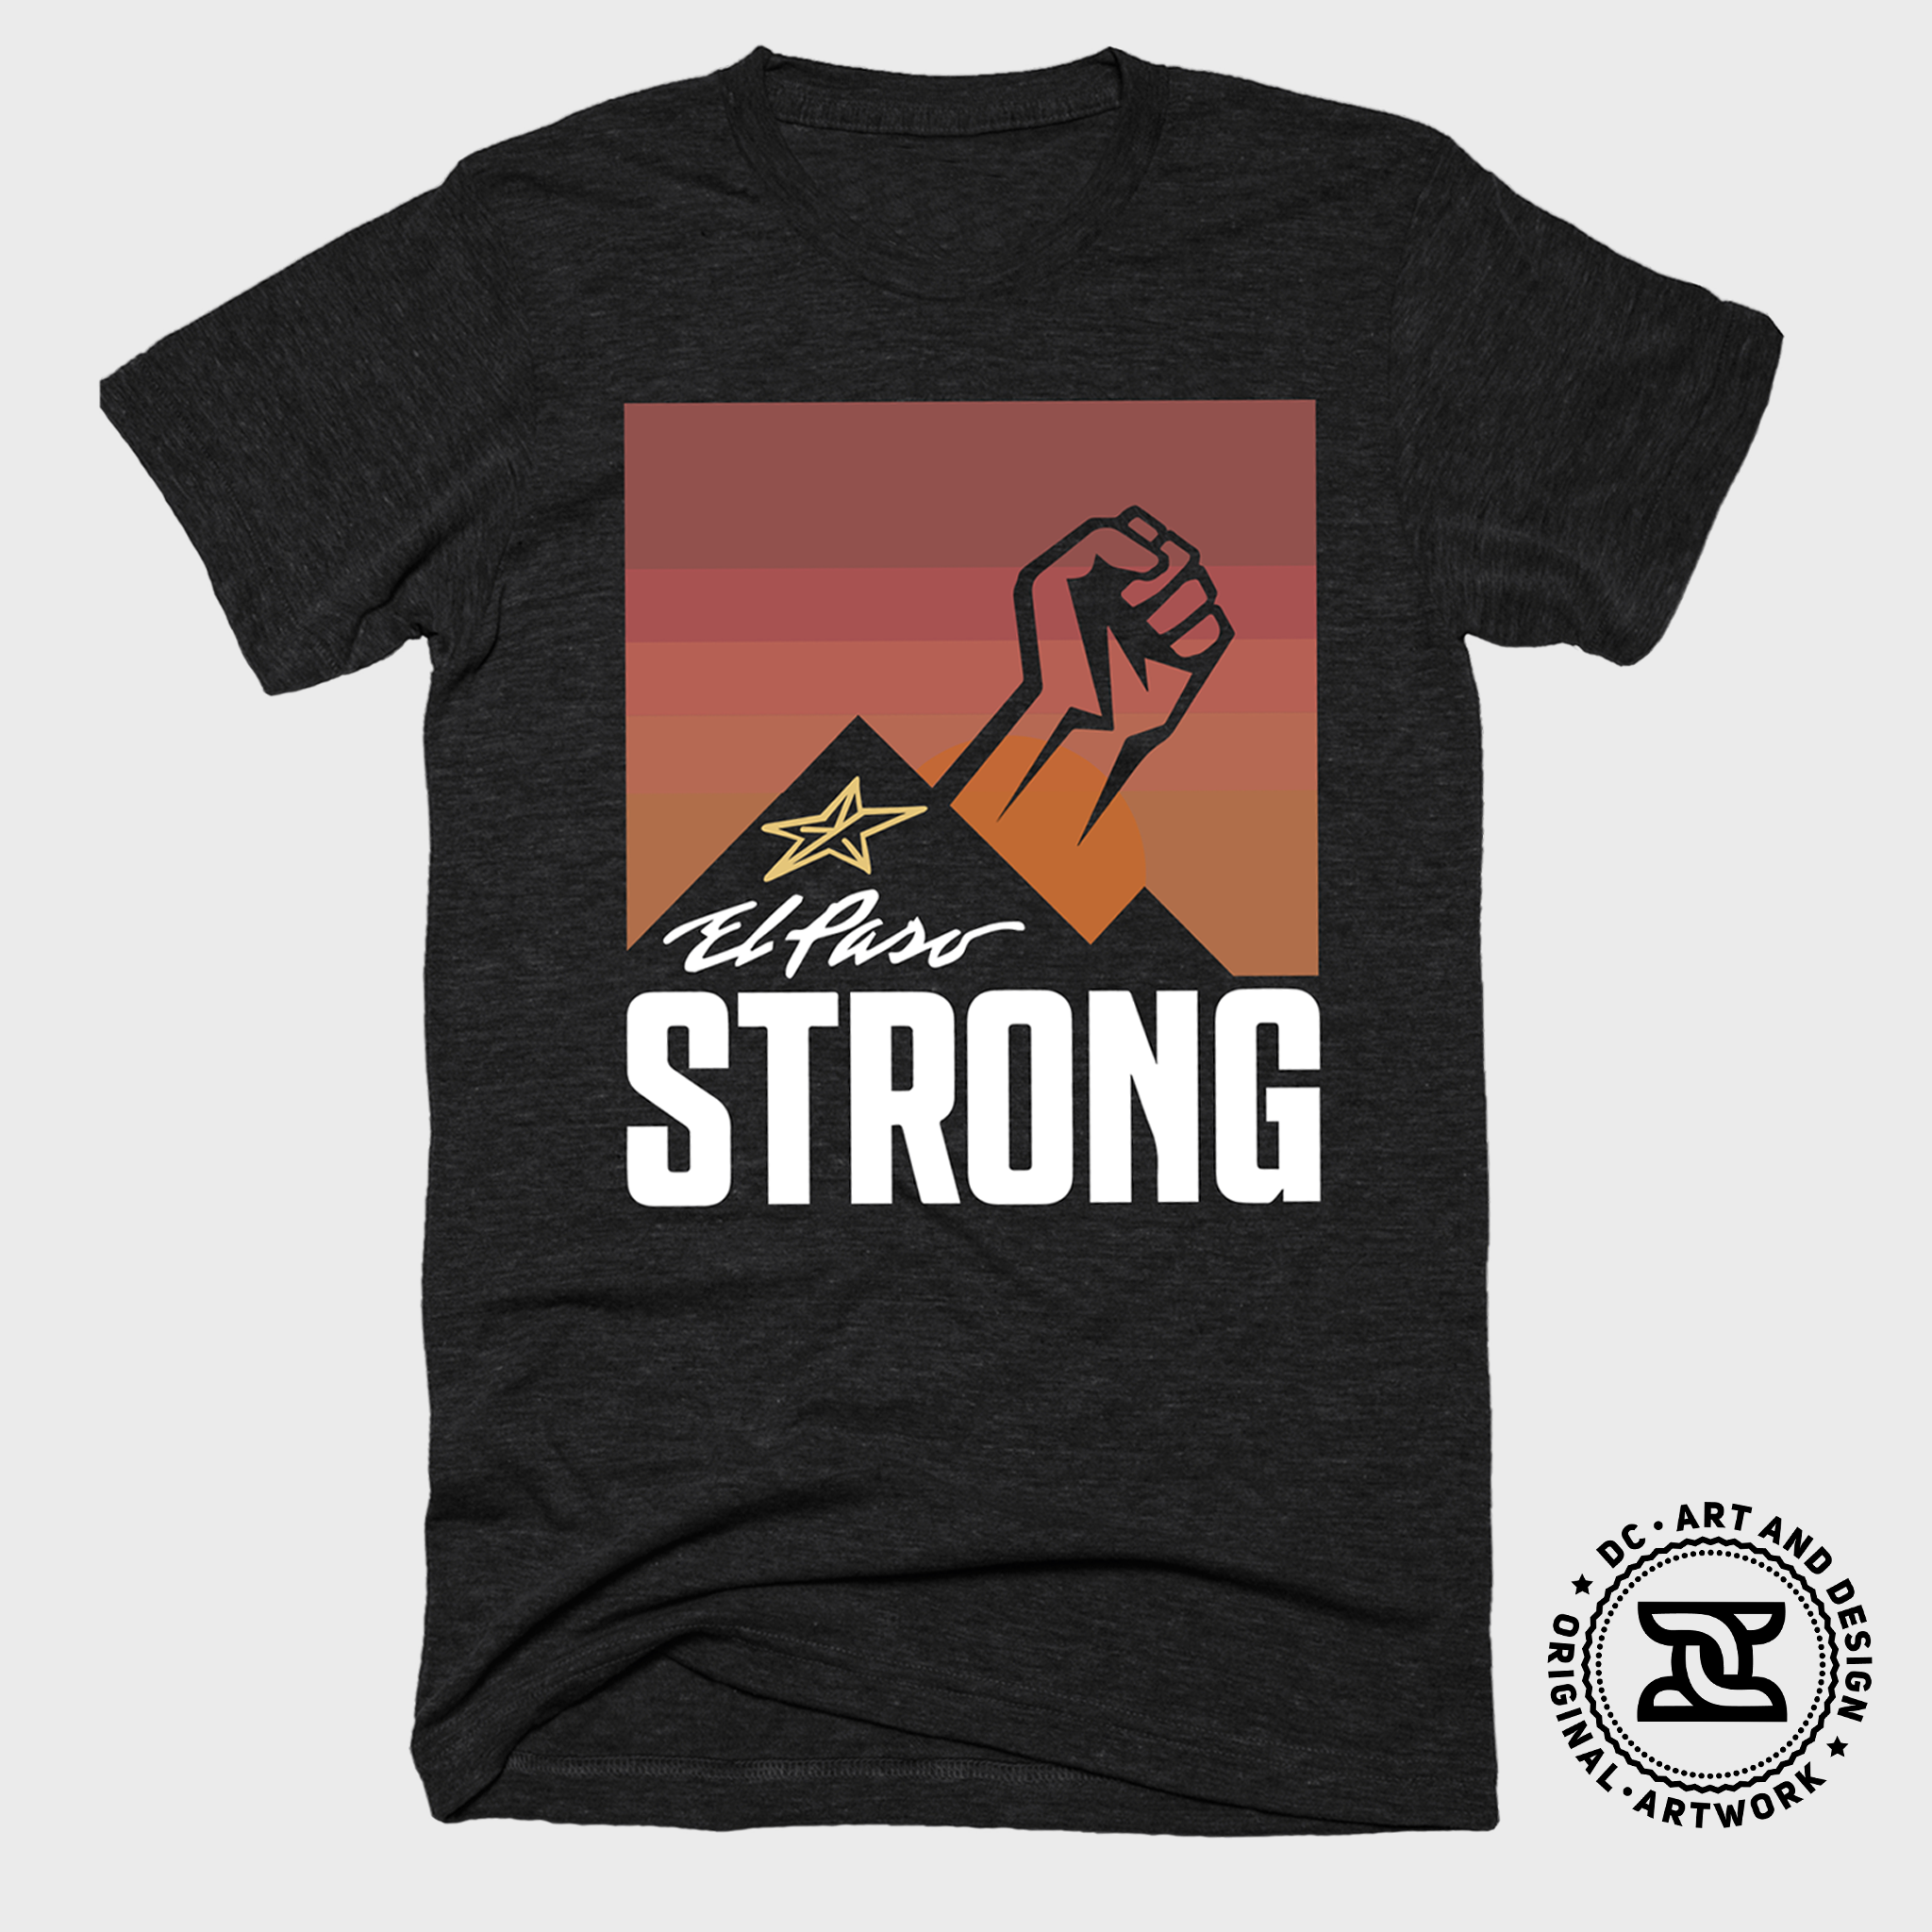 "El Paso Strong ""Sunrise"" T-shirt (Black) by DC Design"